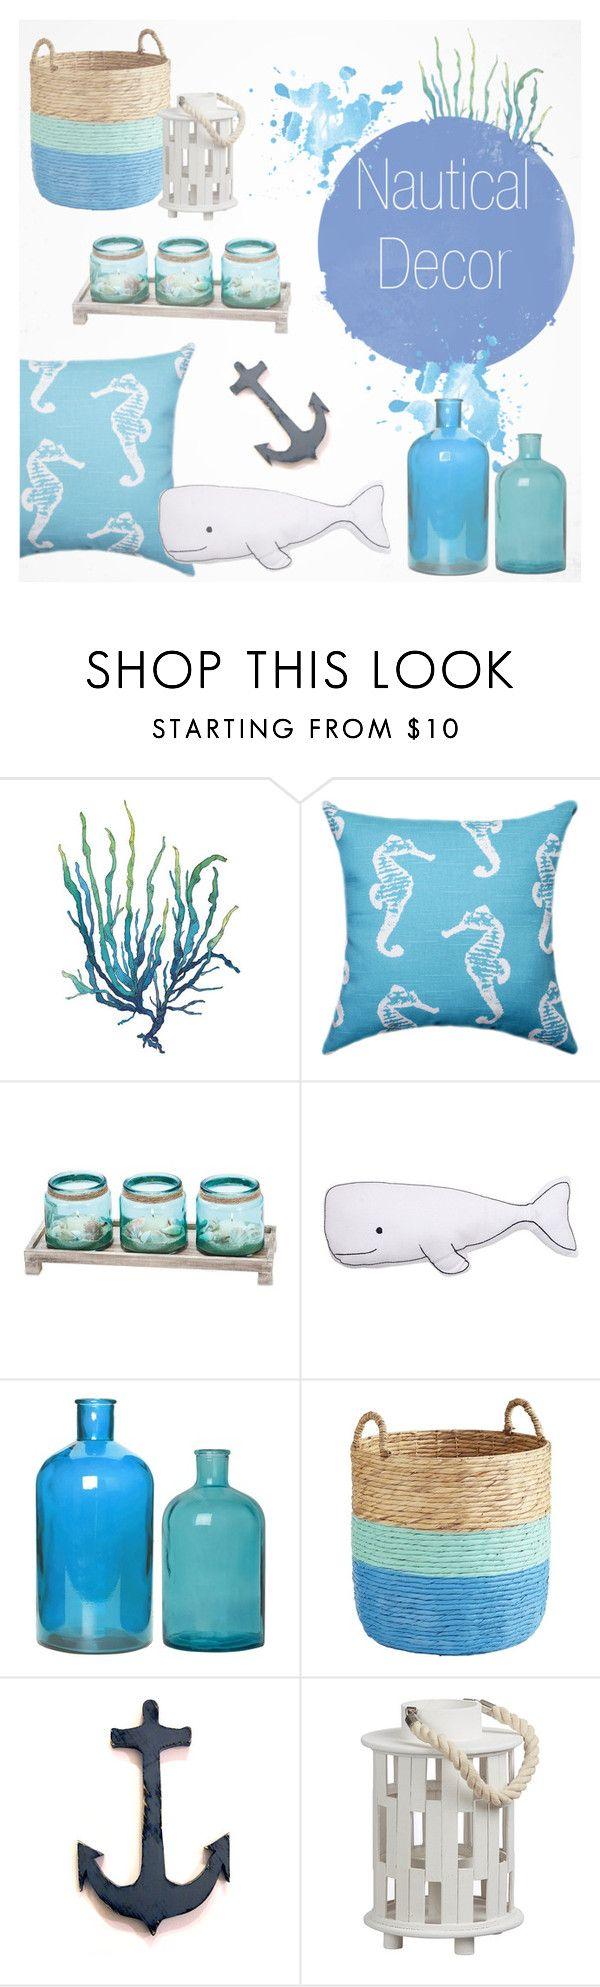 Nautical Decor By Southernpearldesigns Liked On Polyvore Featuring Interior Interiors